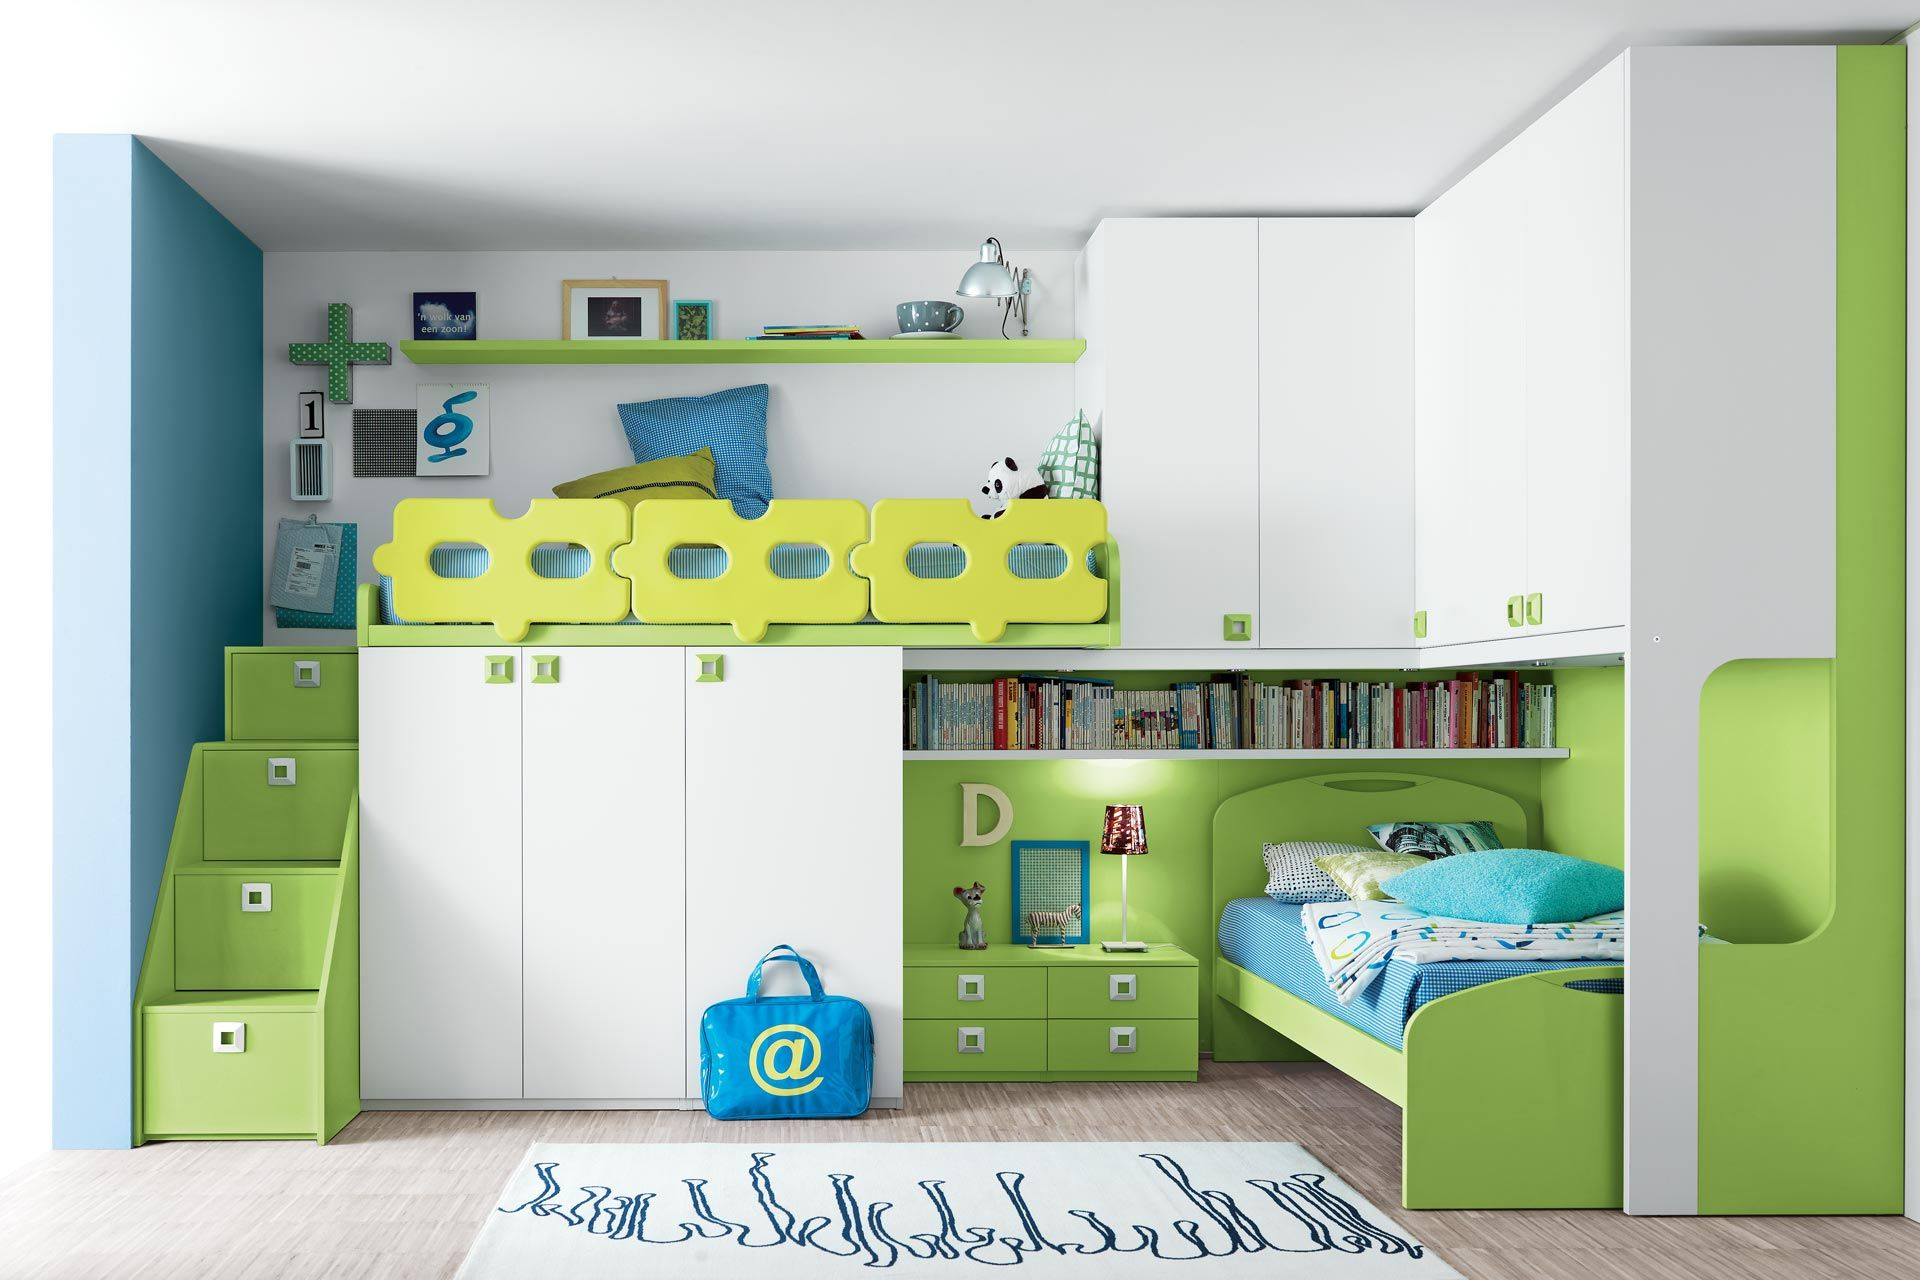 shared kids room design with single bed and cars motive bedding